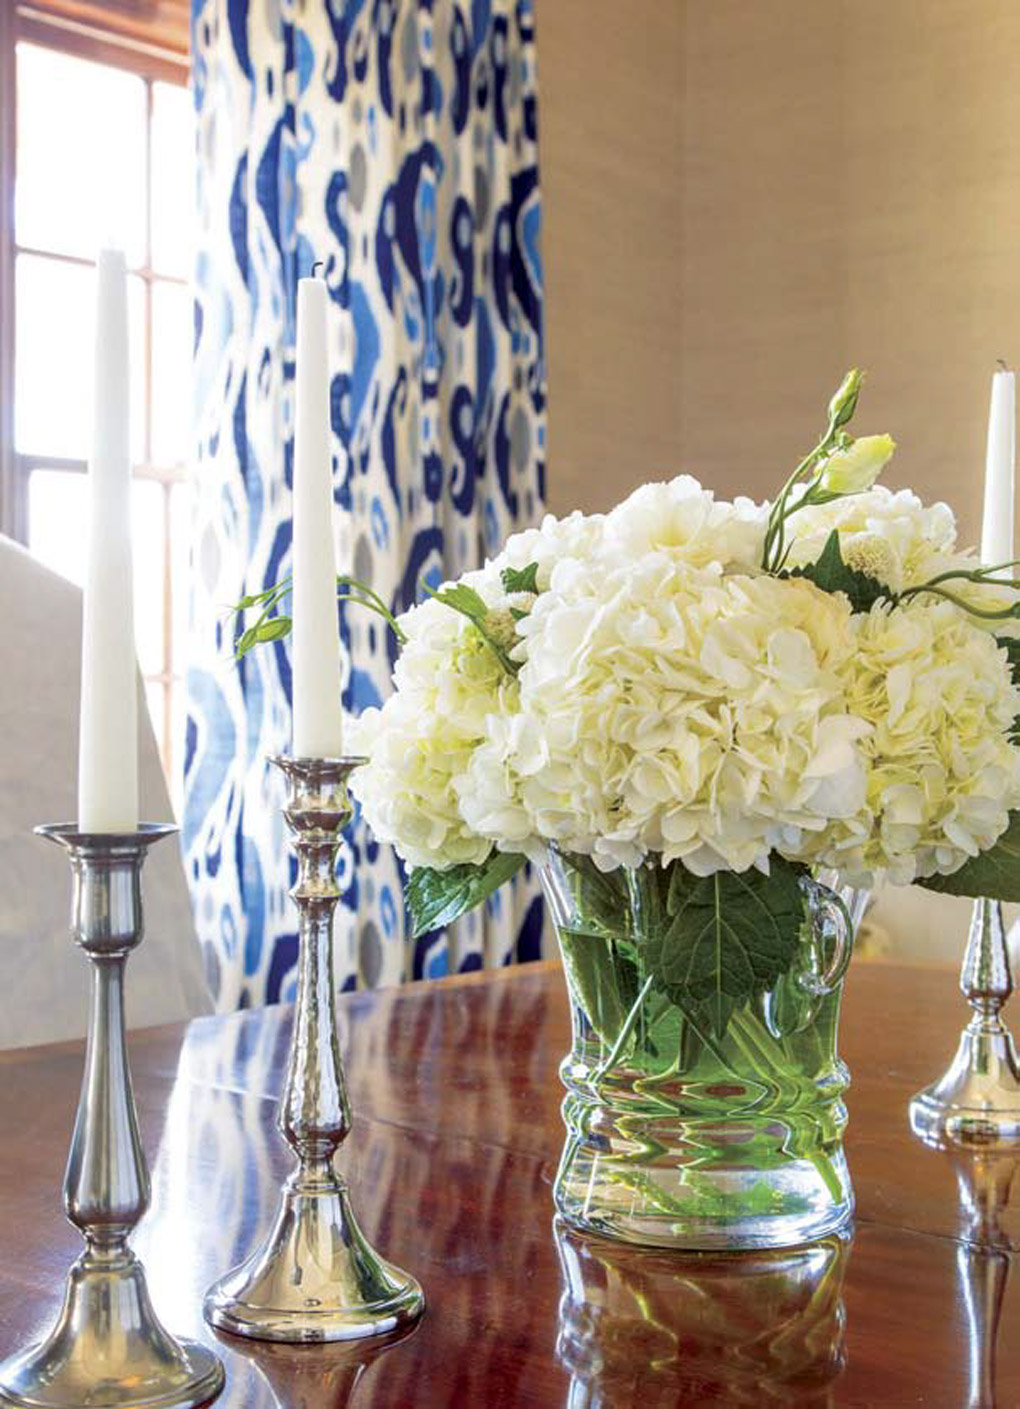 Full creamy hydrangea flowers in a clear vase on the table next to silver candlesticks on a wooden dining table with vibrant blue patterned curtains in the background.